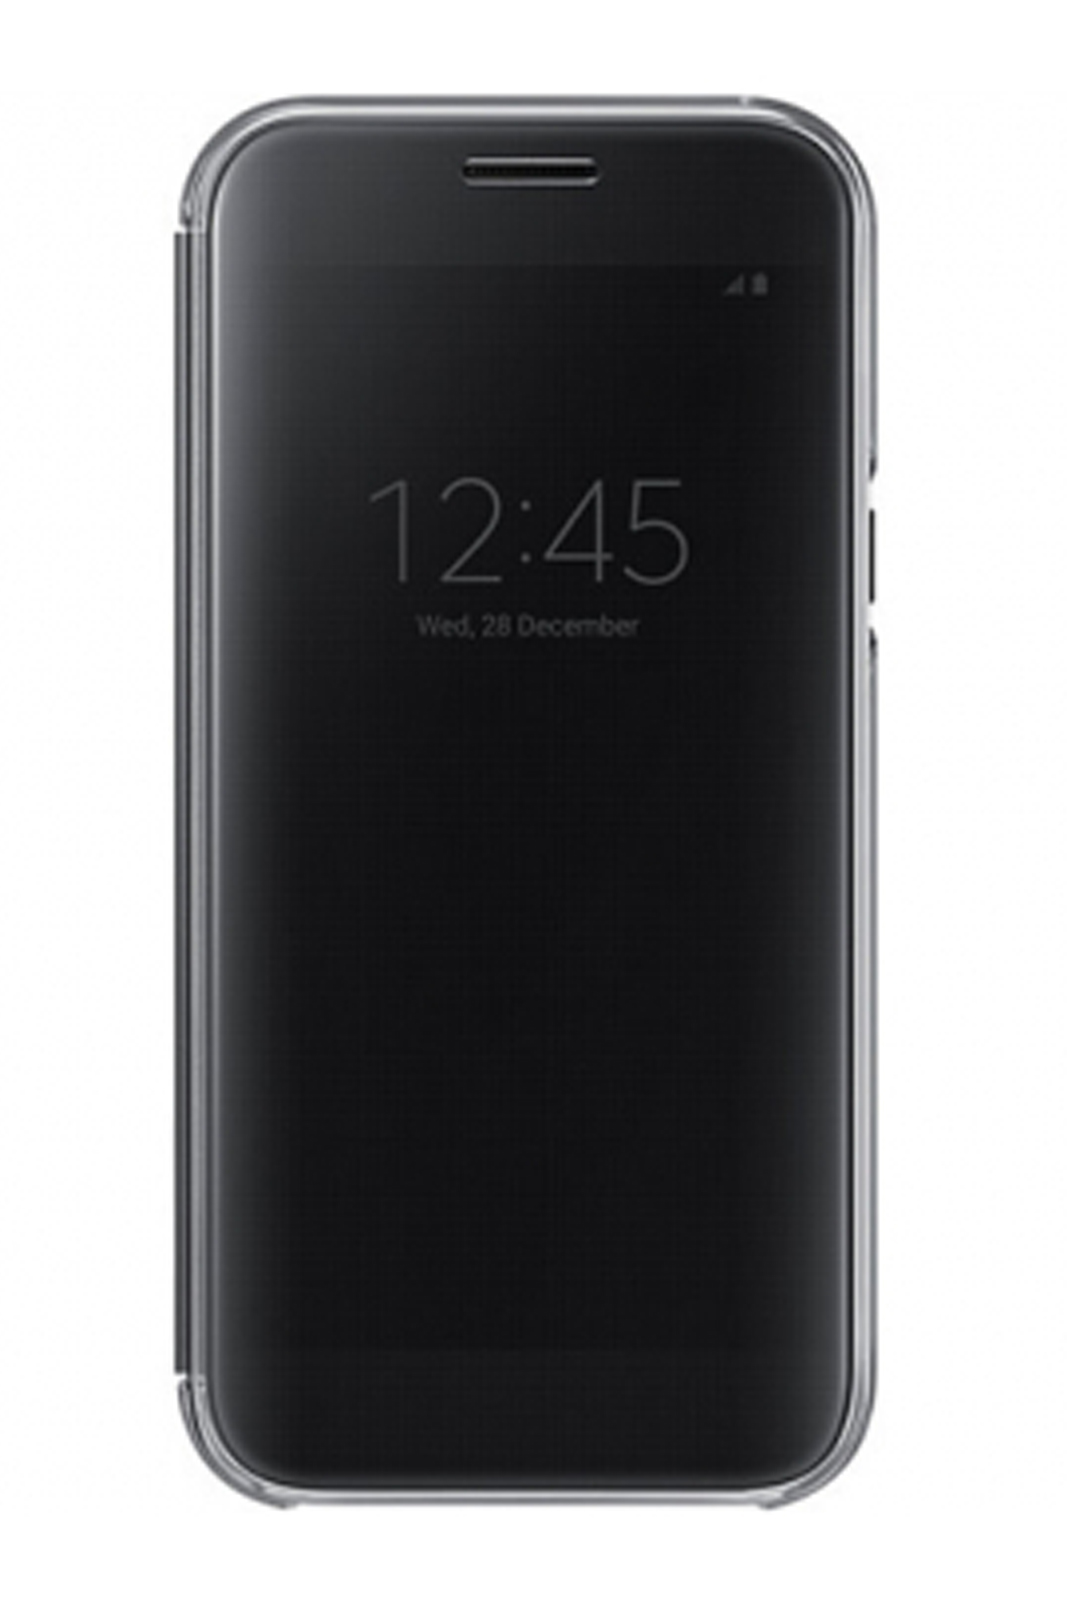 buy online 2e1bc 0f800 Details about Official Samsung Galaxy A5 2017 SM-A520 Black Clear View  Cover / Case - EF-ZA520